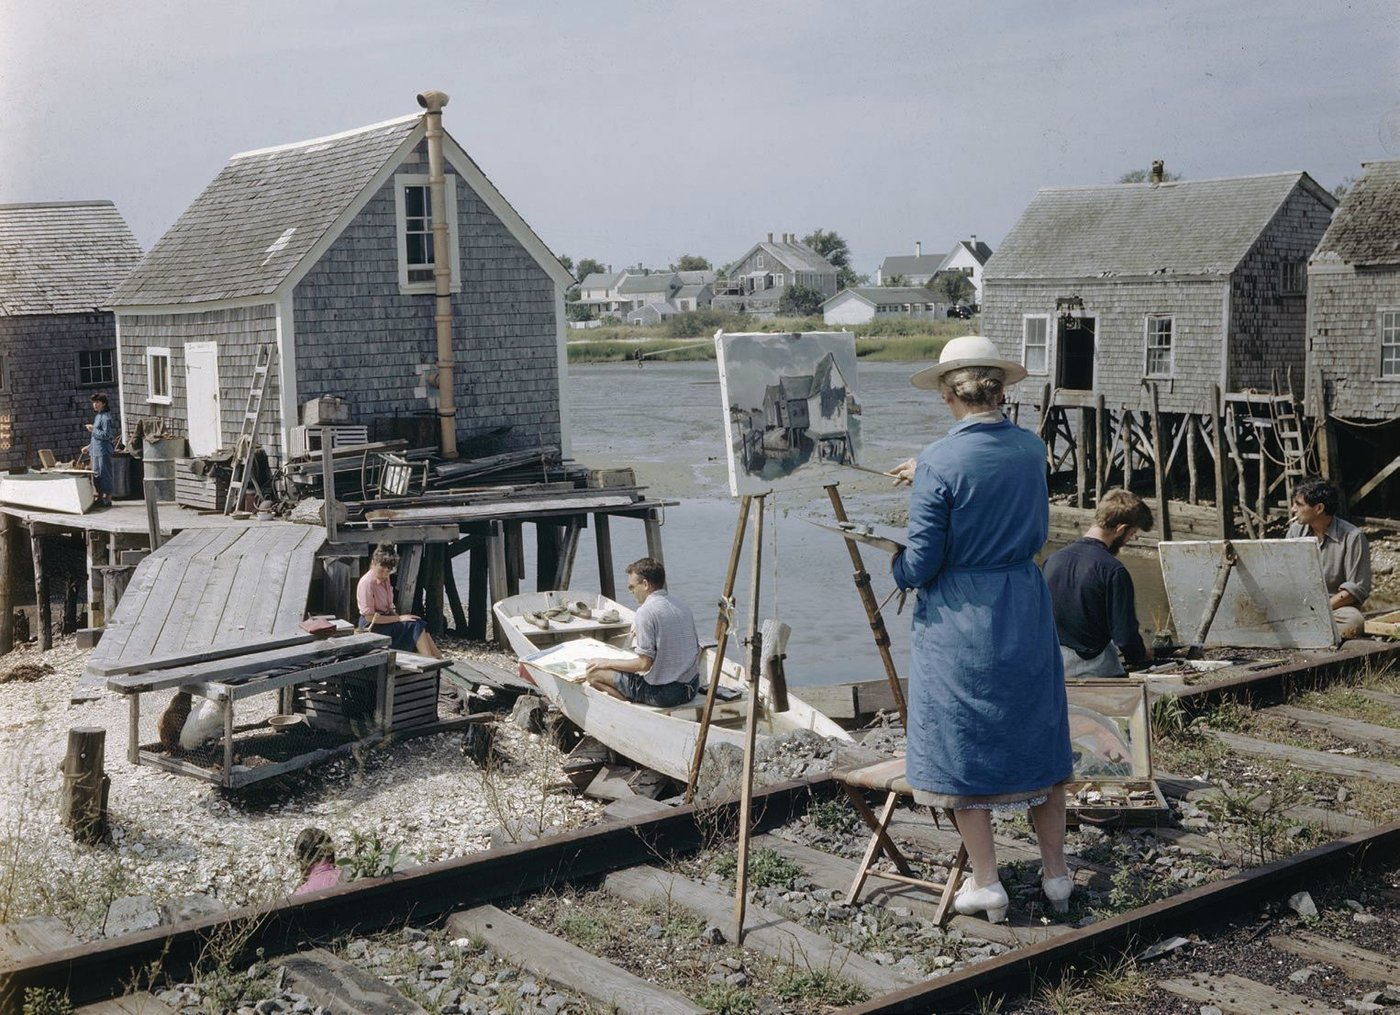 A plein-air painting class in 1947 takes place in a perfect setting in Wellfleet, Mass. PHOTO BY ANDREAS FEININGER/THE LIFE PICTURE COLLECTION/GETTY IMAGES